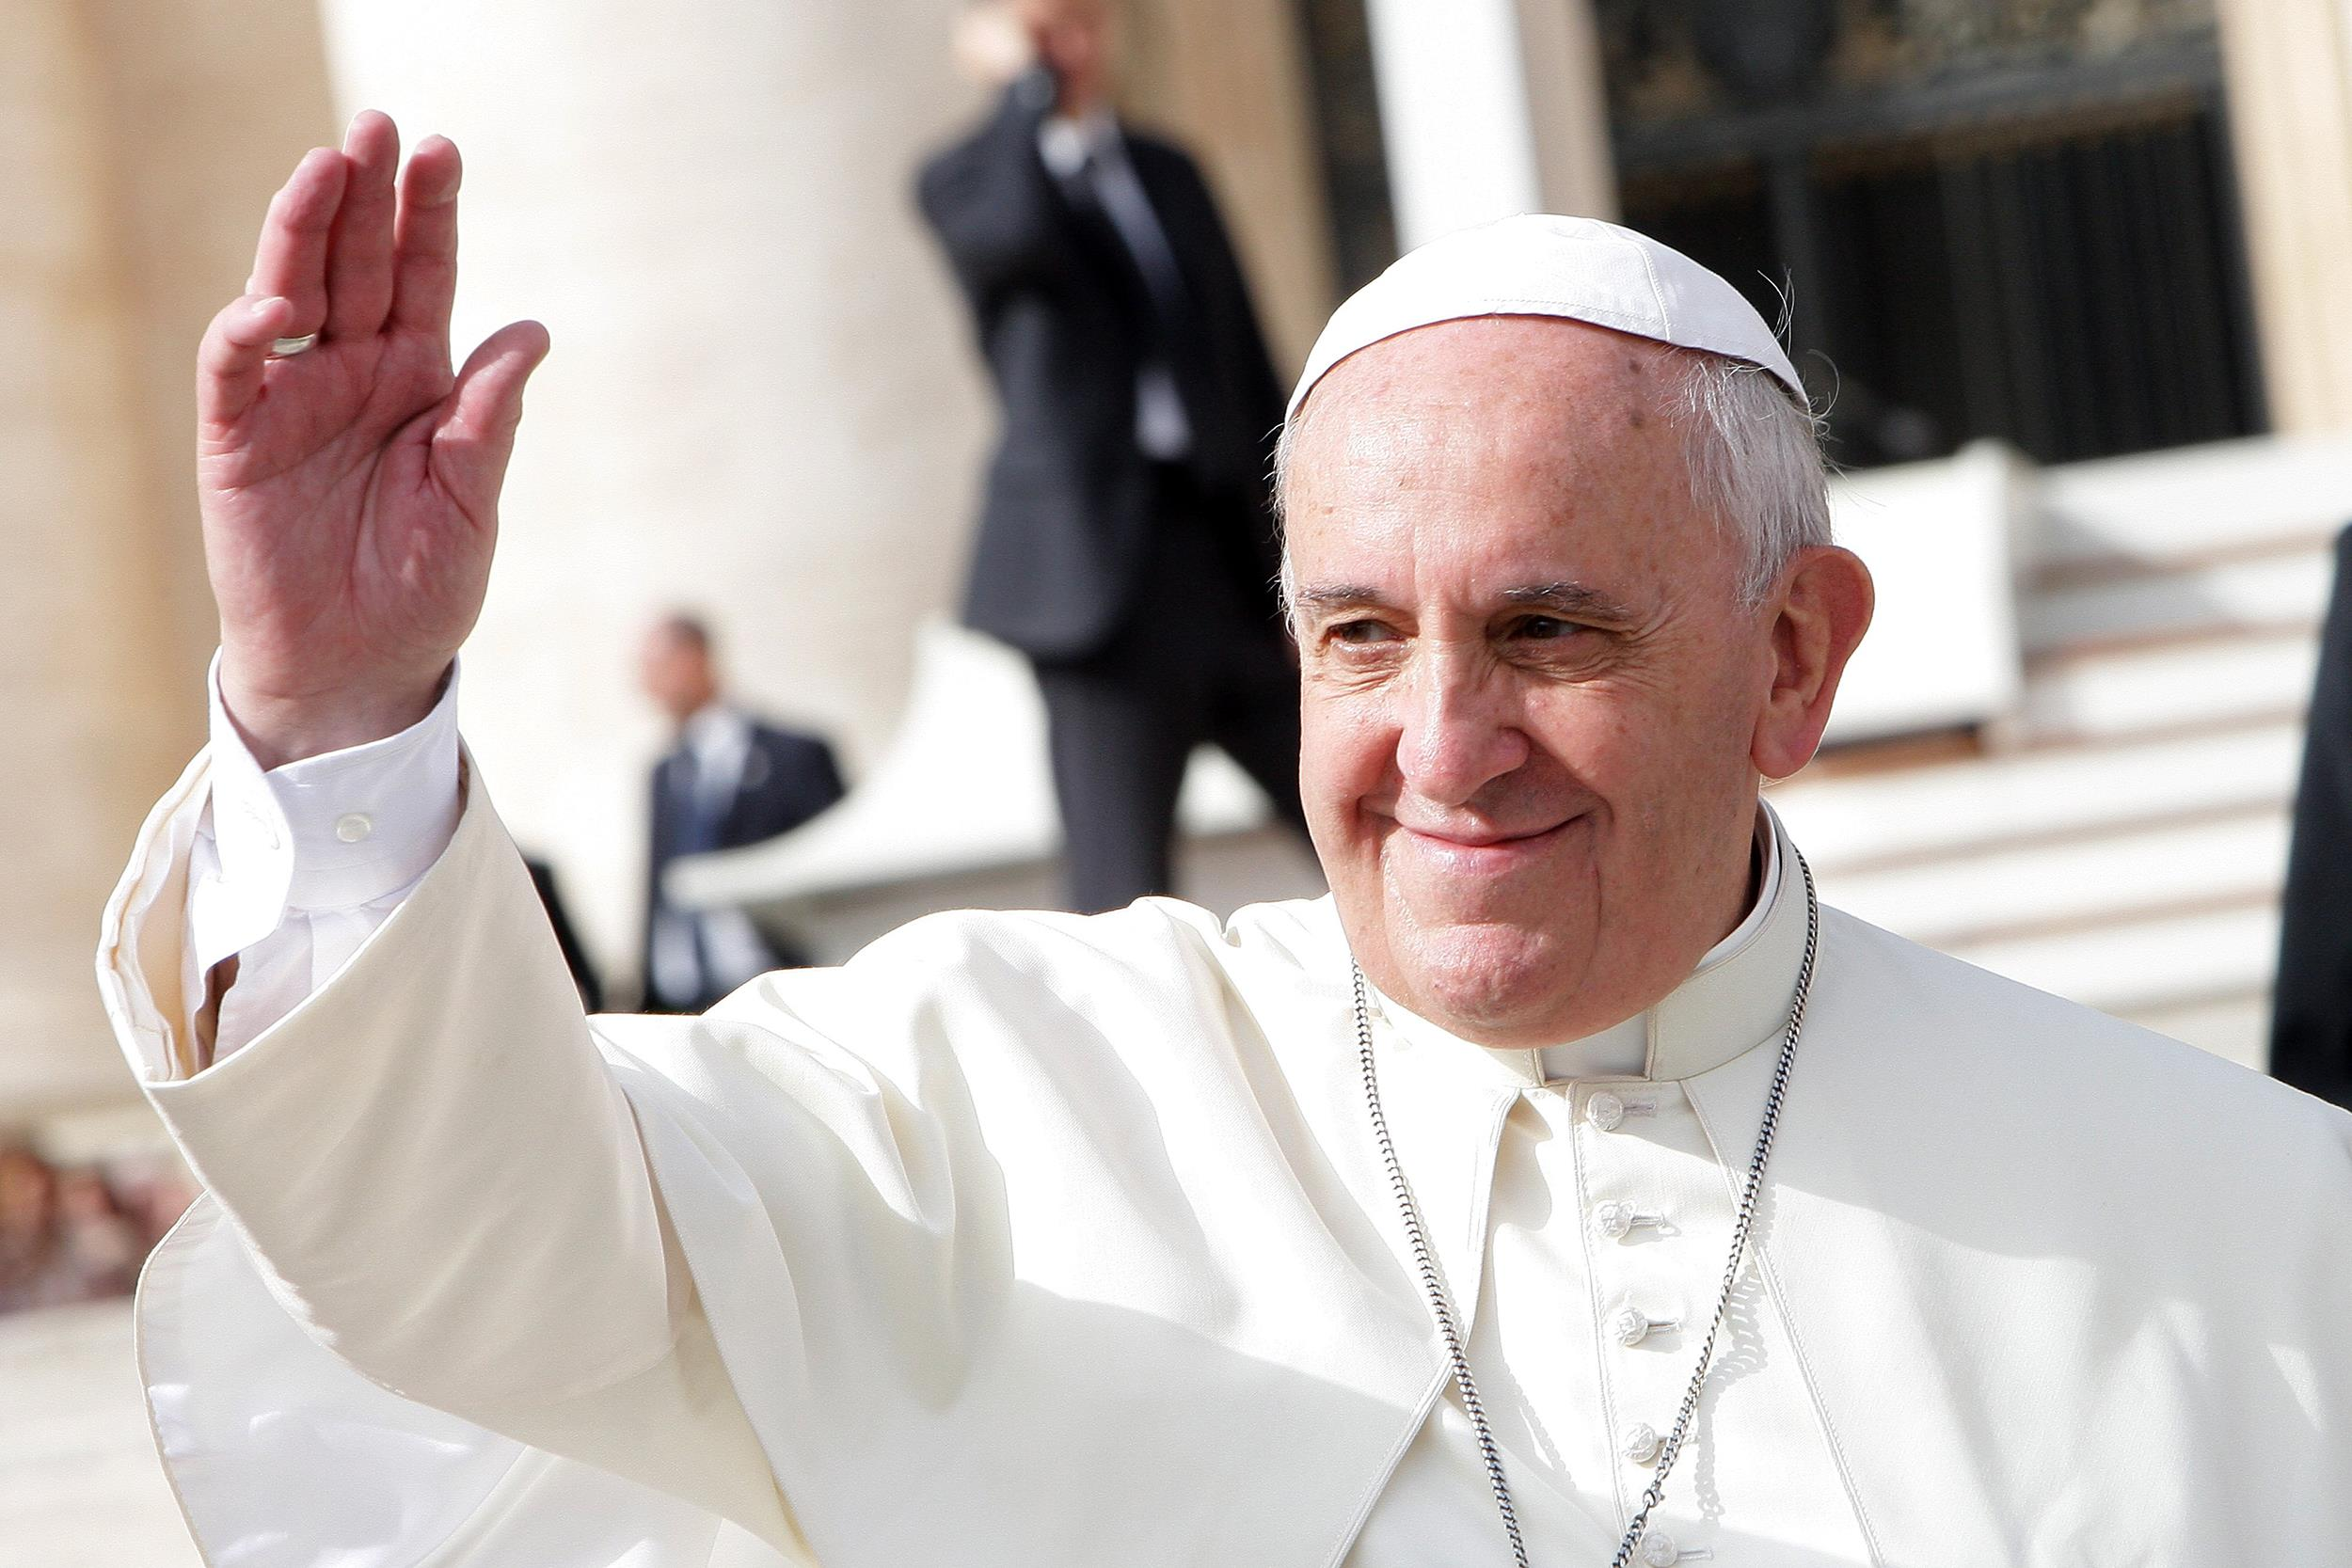 pope francis blessing Migrants and Refugees